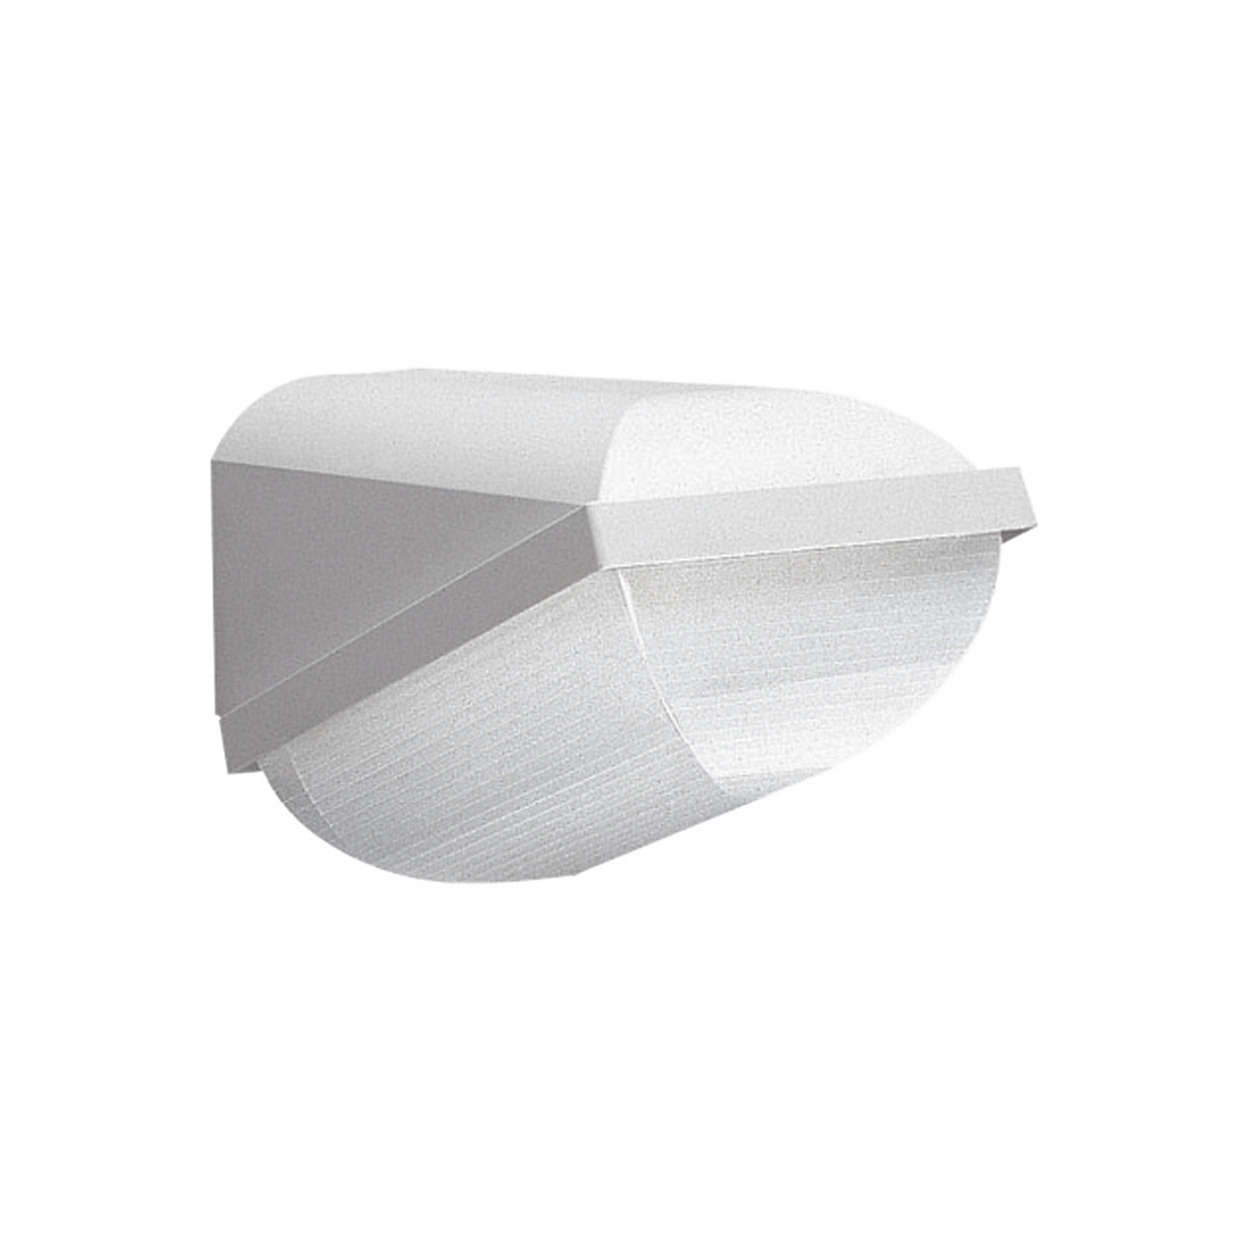 FWC110/120/121 and FCC110/120 – for low-level lighting